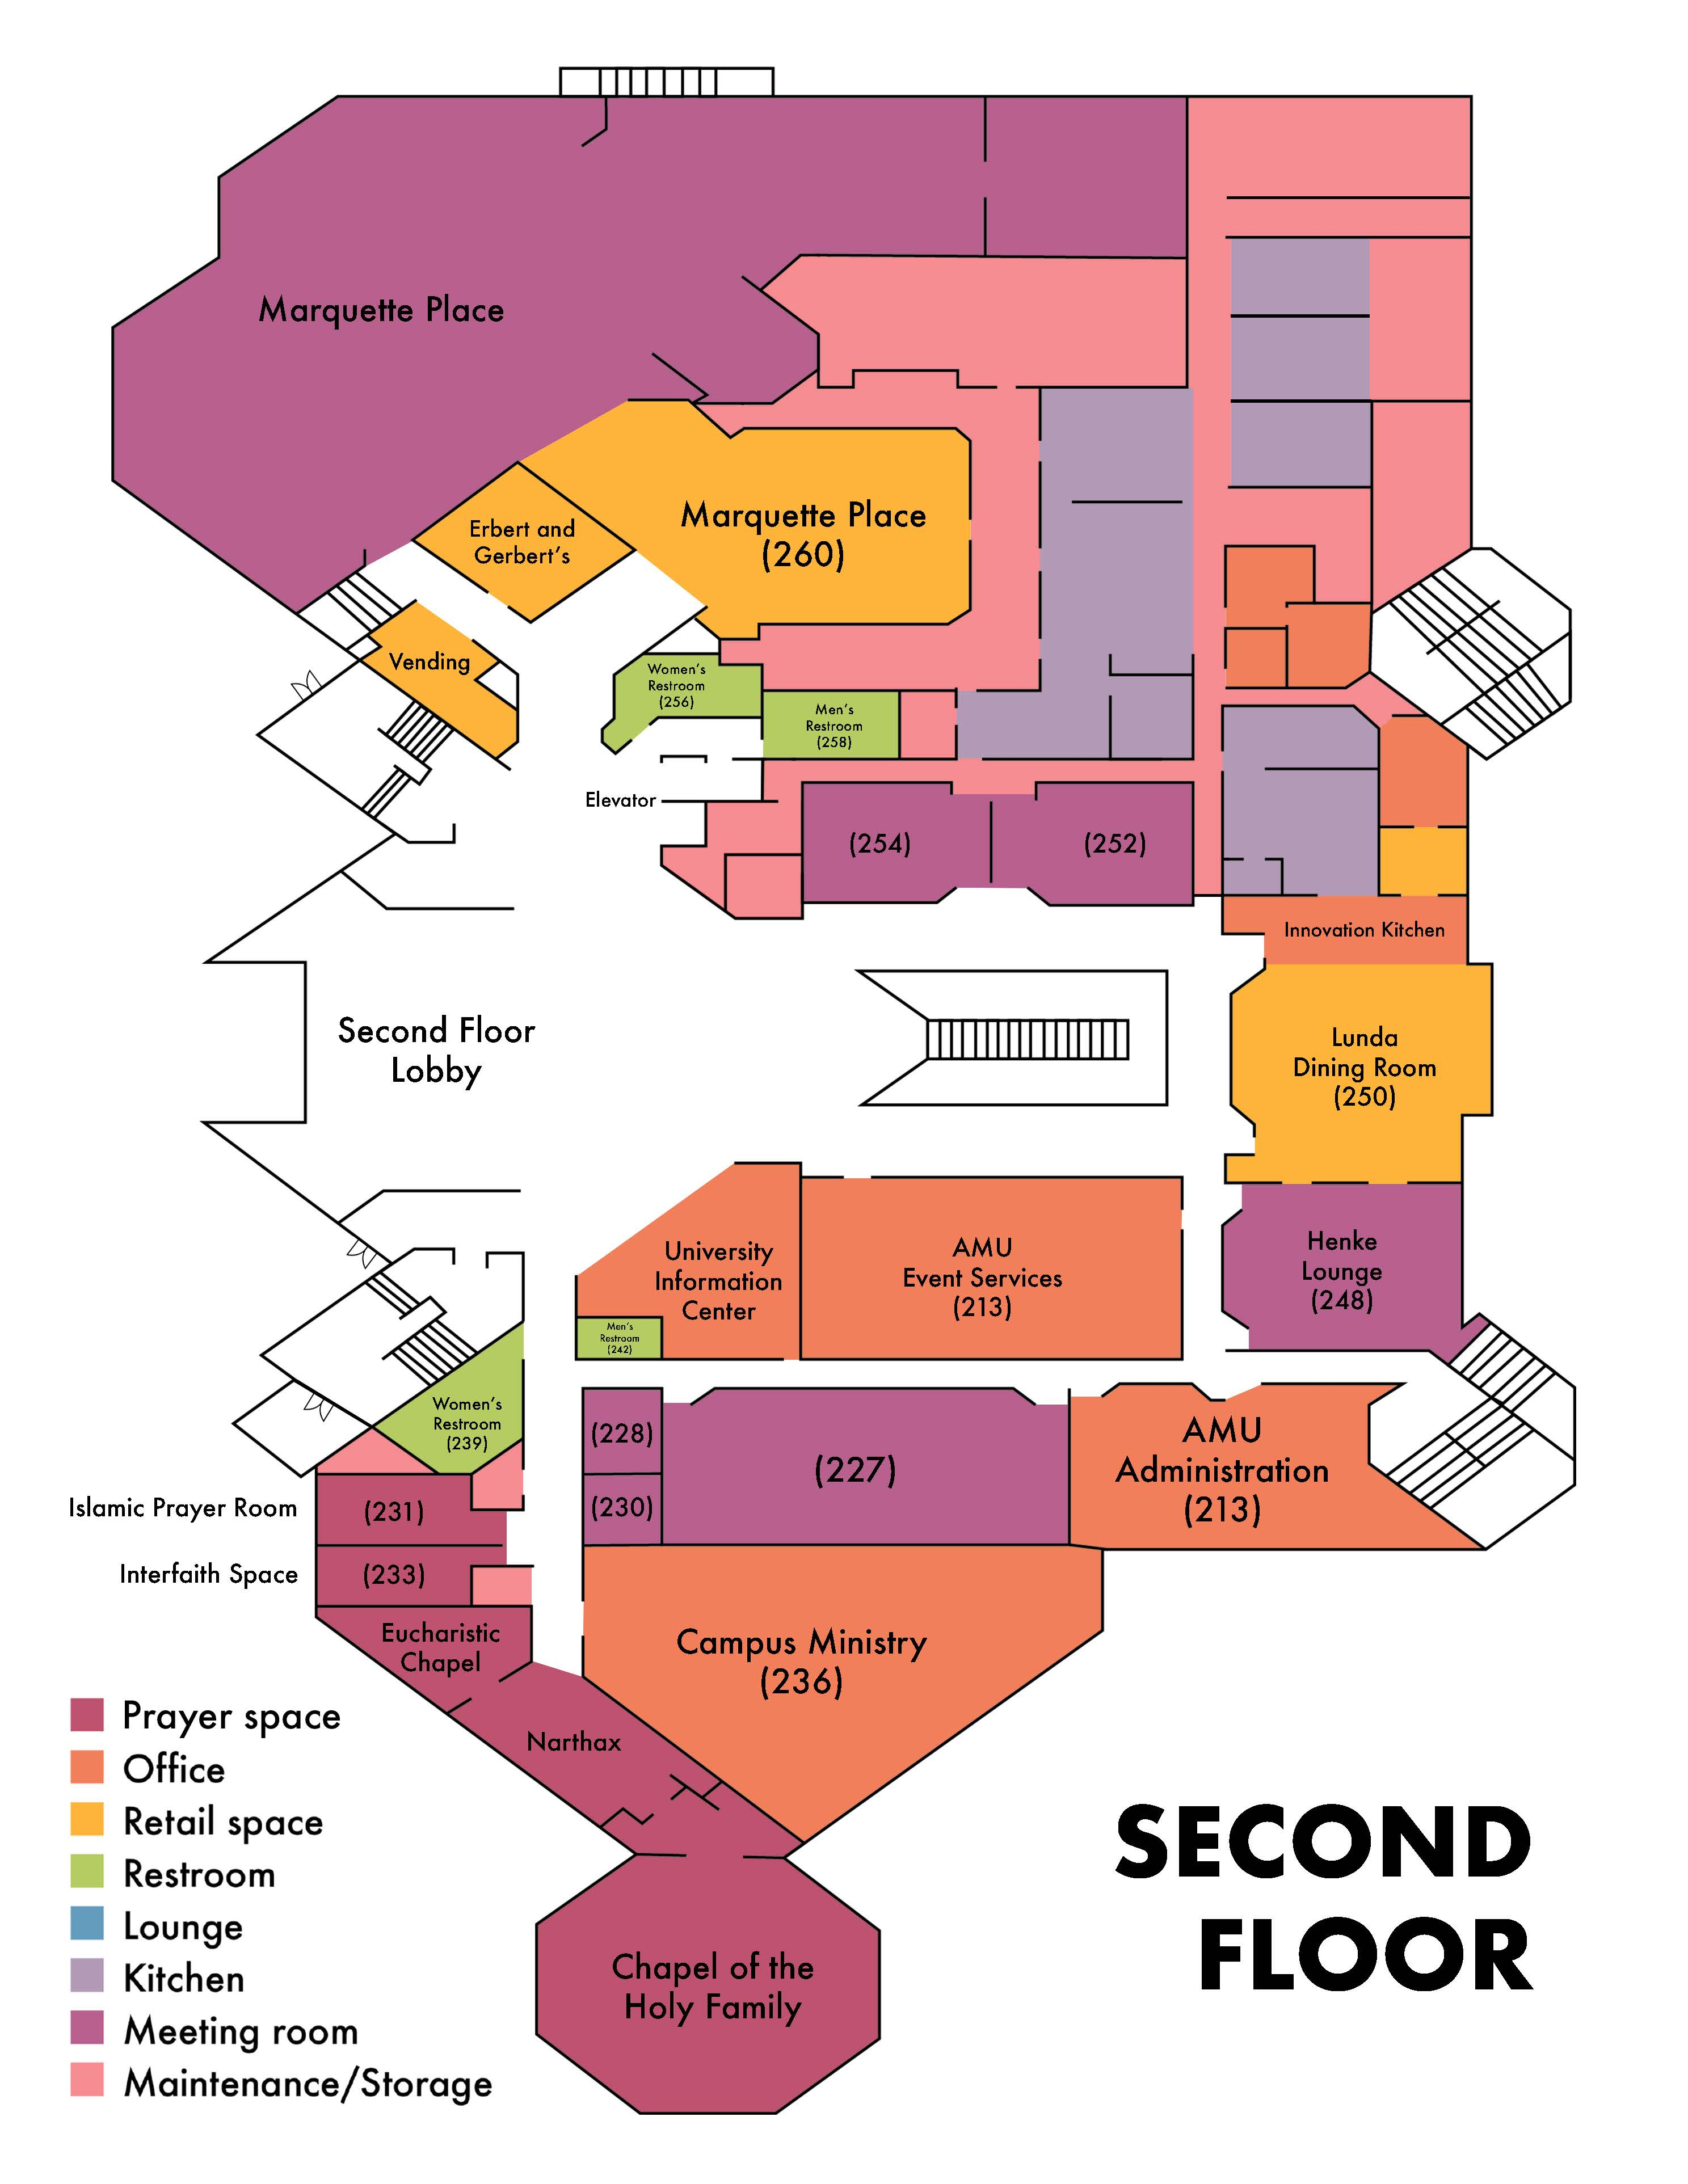 amu floor two diagram